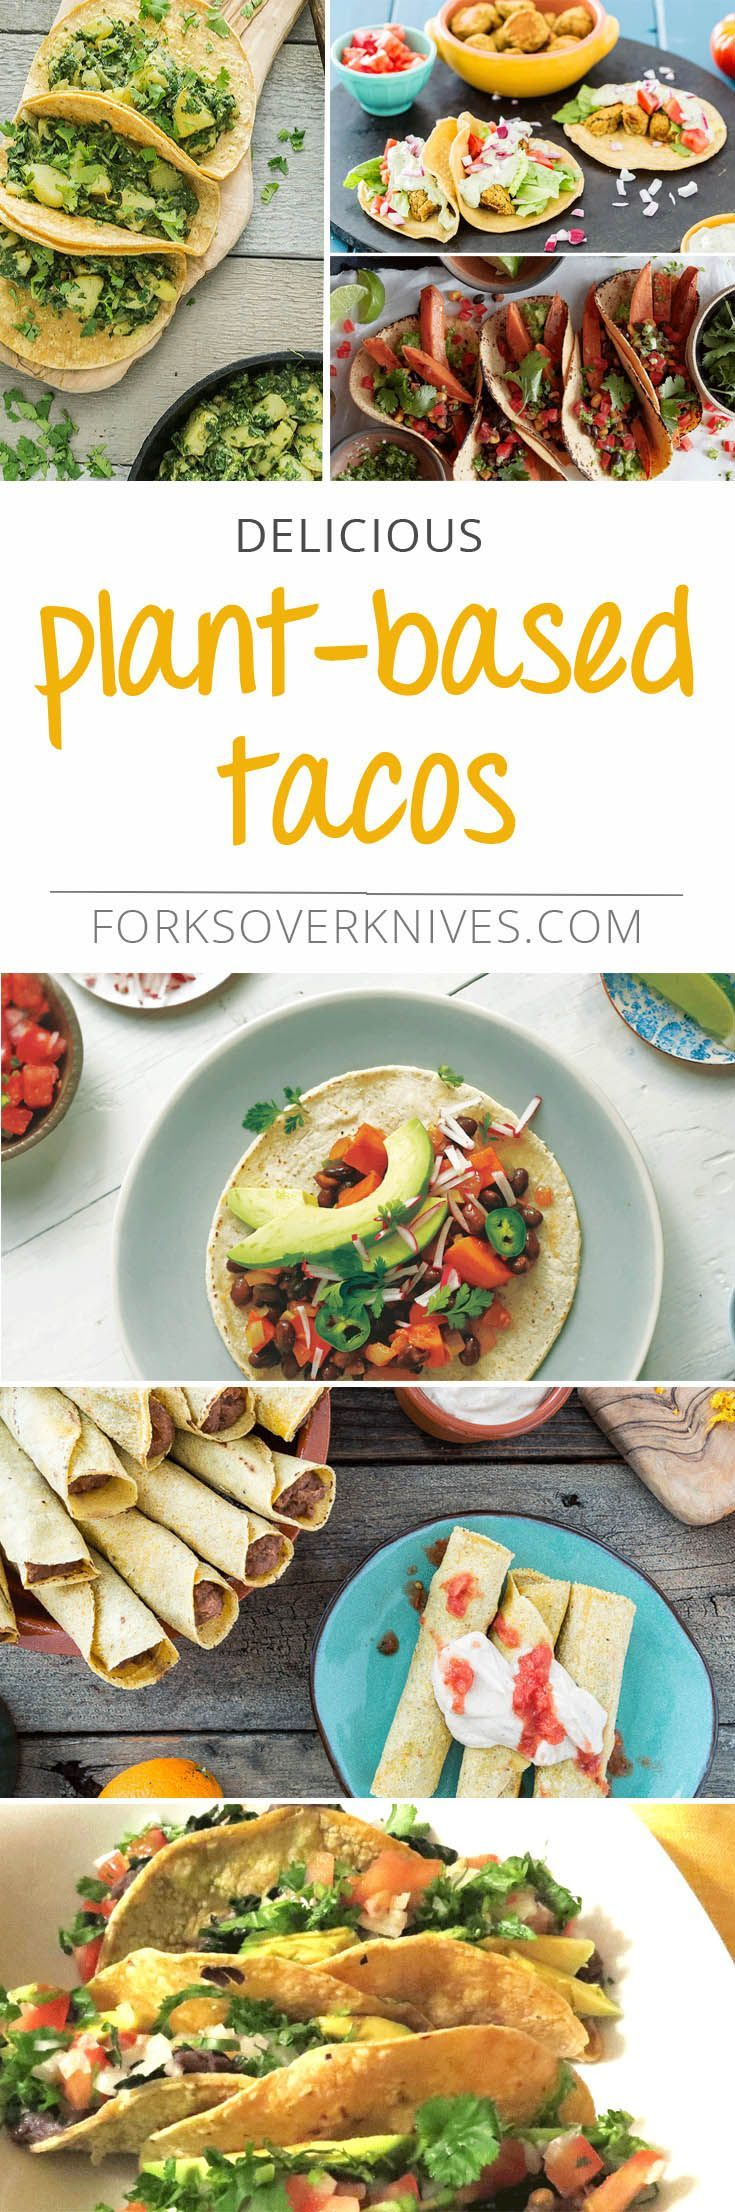 Who said tacos have to be filled withshredded meat and cheese? Certainly no one in Mexico! These tacos are tasty and hit the spot any day of the week. Here are some of our favorite recipesto get your taste buds...  Read more